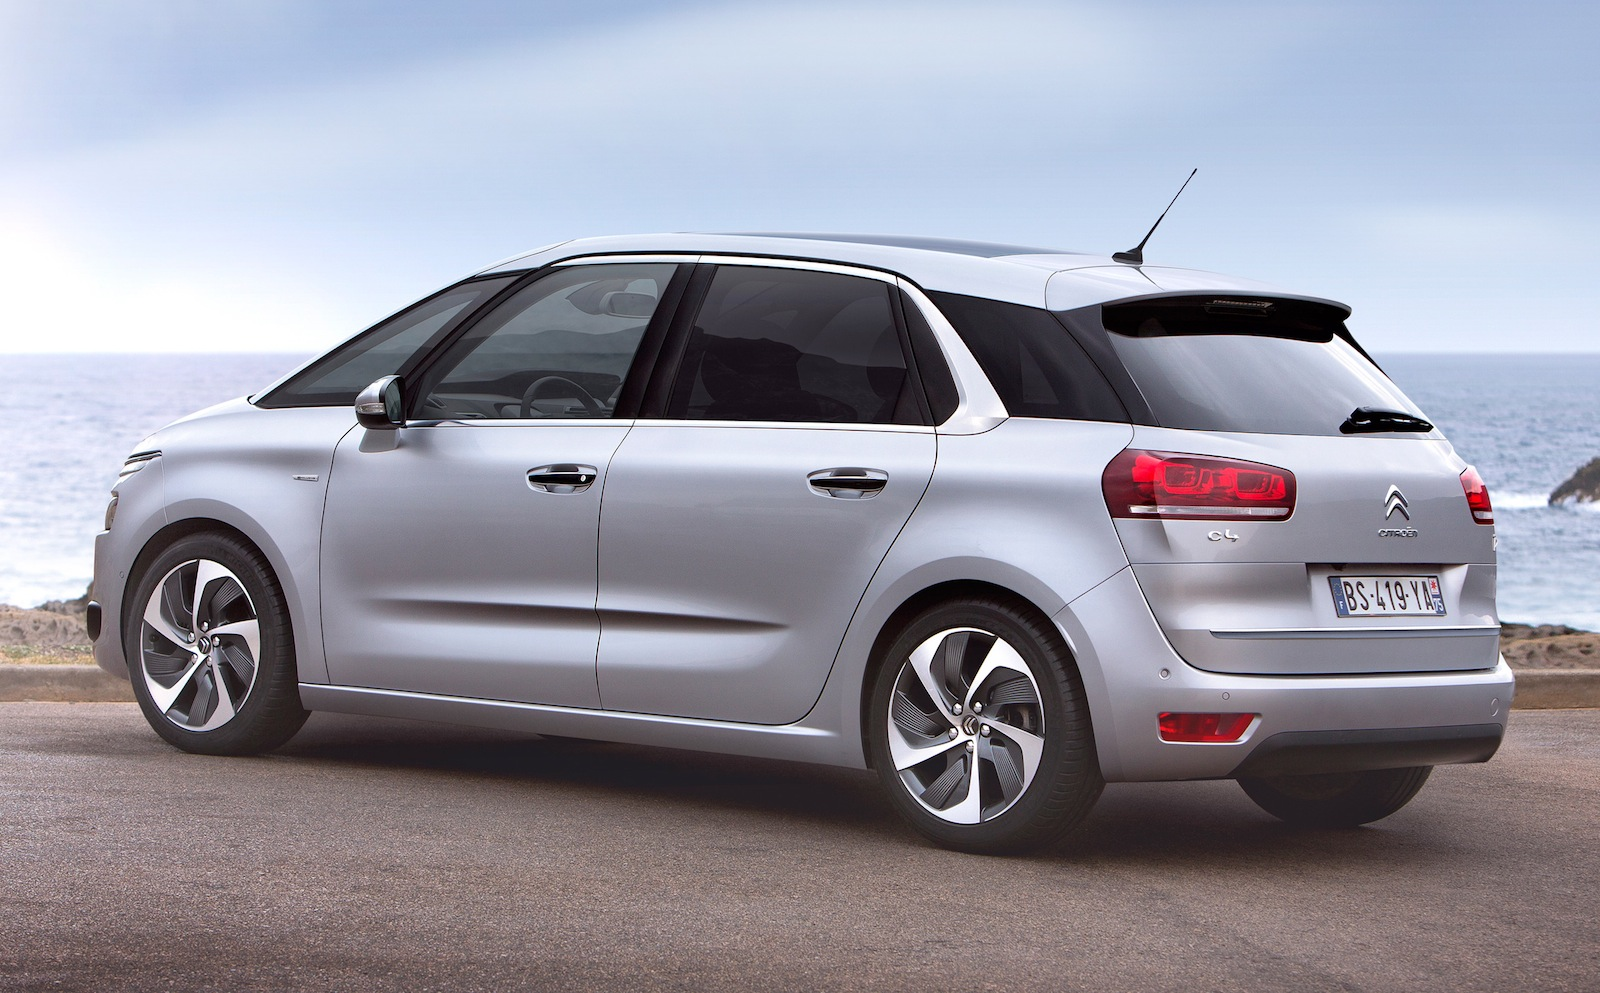 Asientos C4 Citroen C4 Picasso All New Mini Mpv Unveiled Photos 1